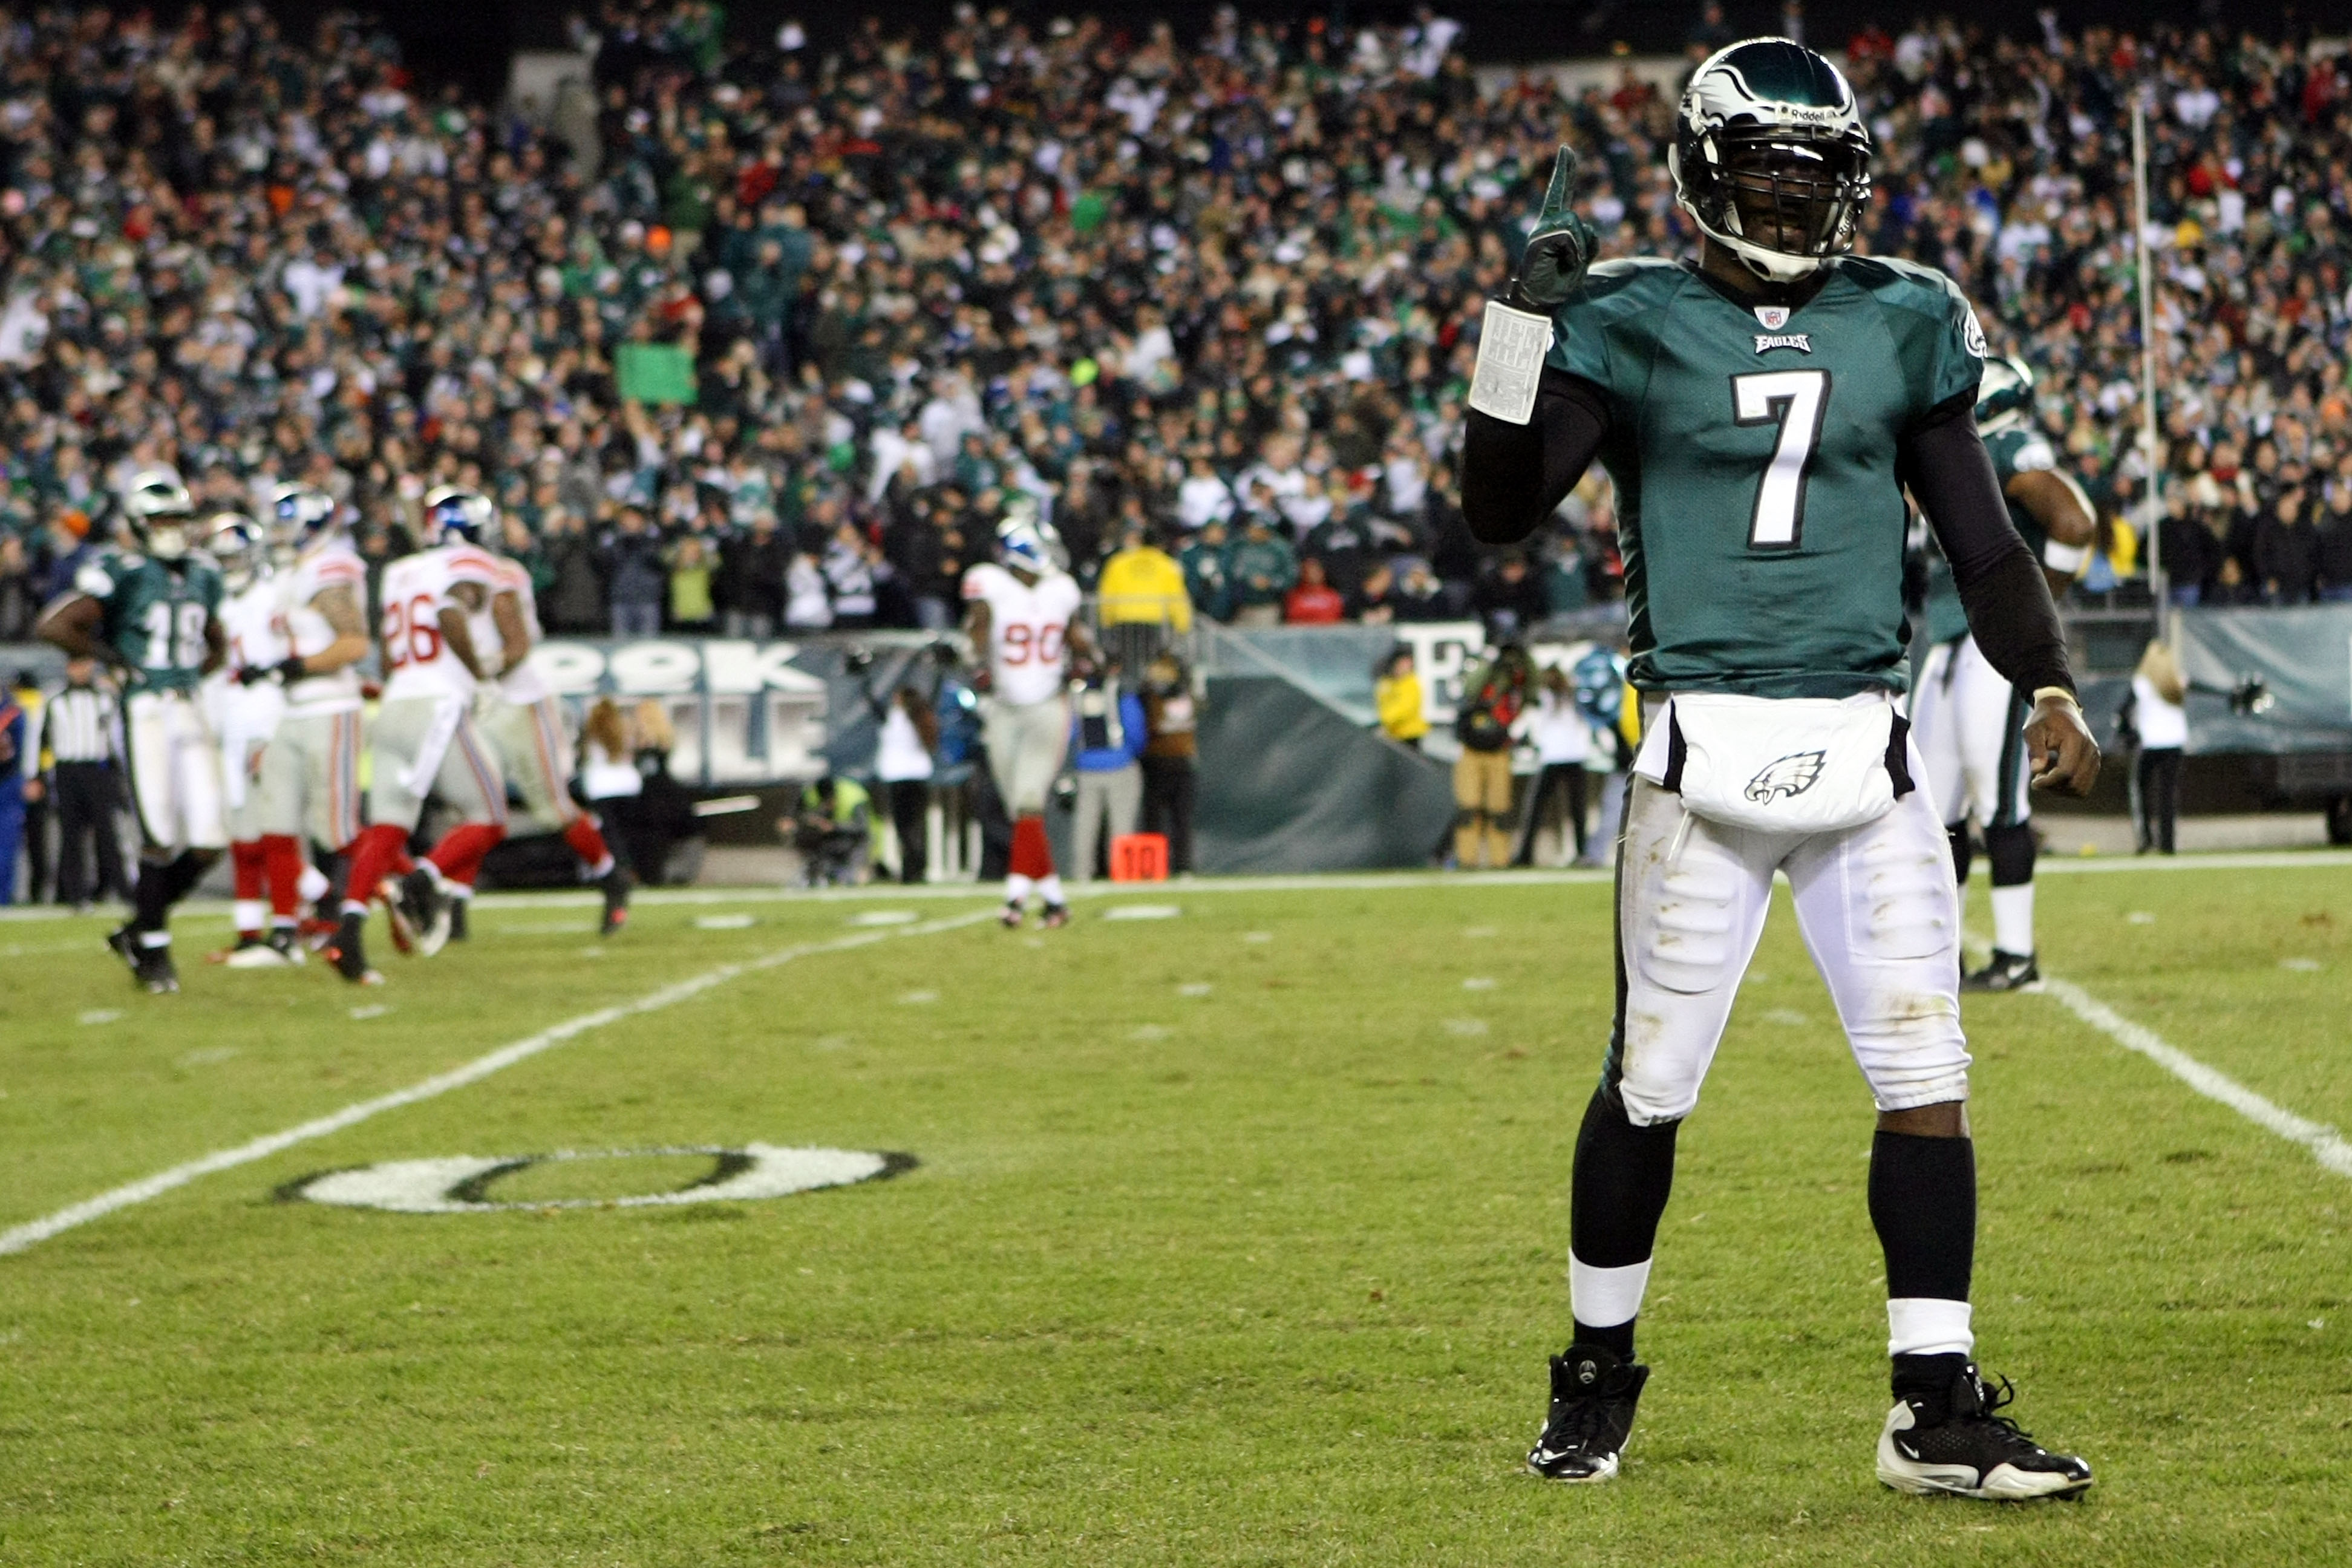 PHILADELPHIA - NOVEMBER 21:  Michael Vick #7 of the Philadelphia Eagles celebrates after converting on a two point conversion in the fourth quarter as Justin Tuck #91 of the New York Giants looks on at Lincoln Financial Field on November 21, 2010 in Phila